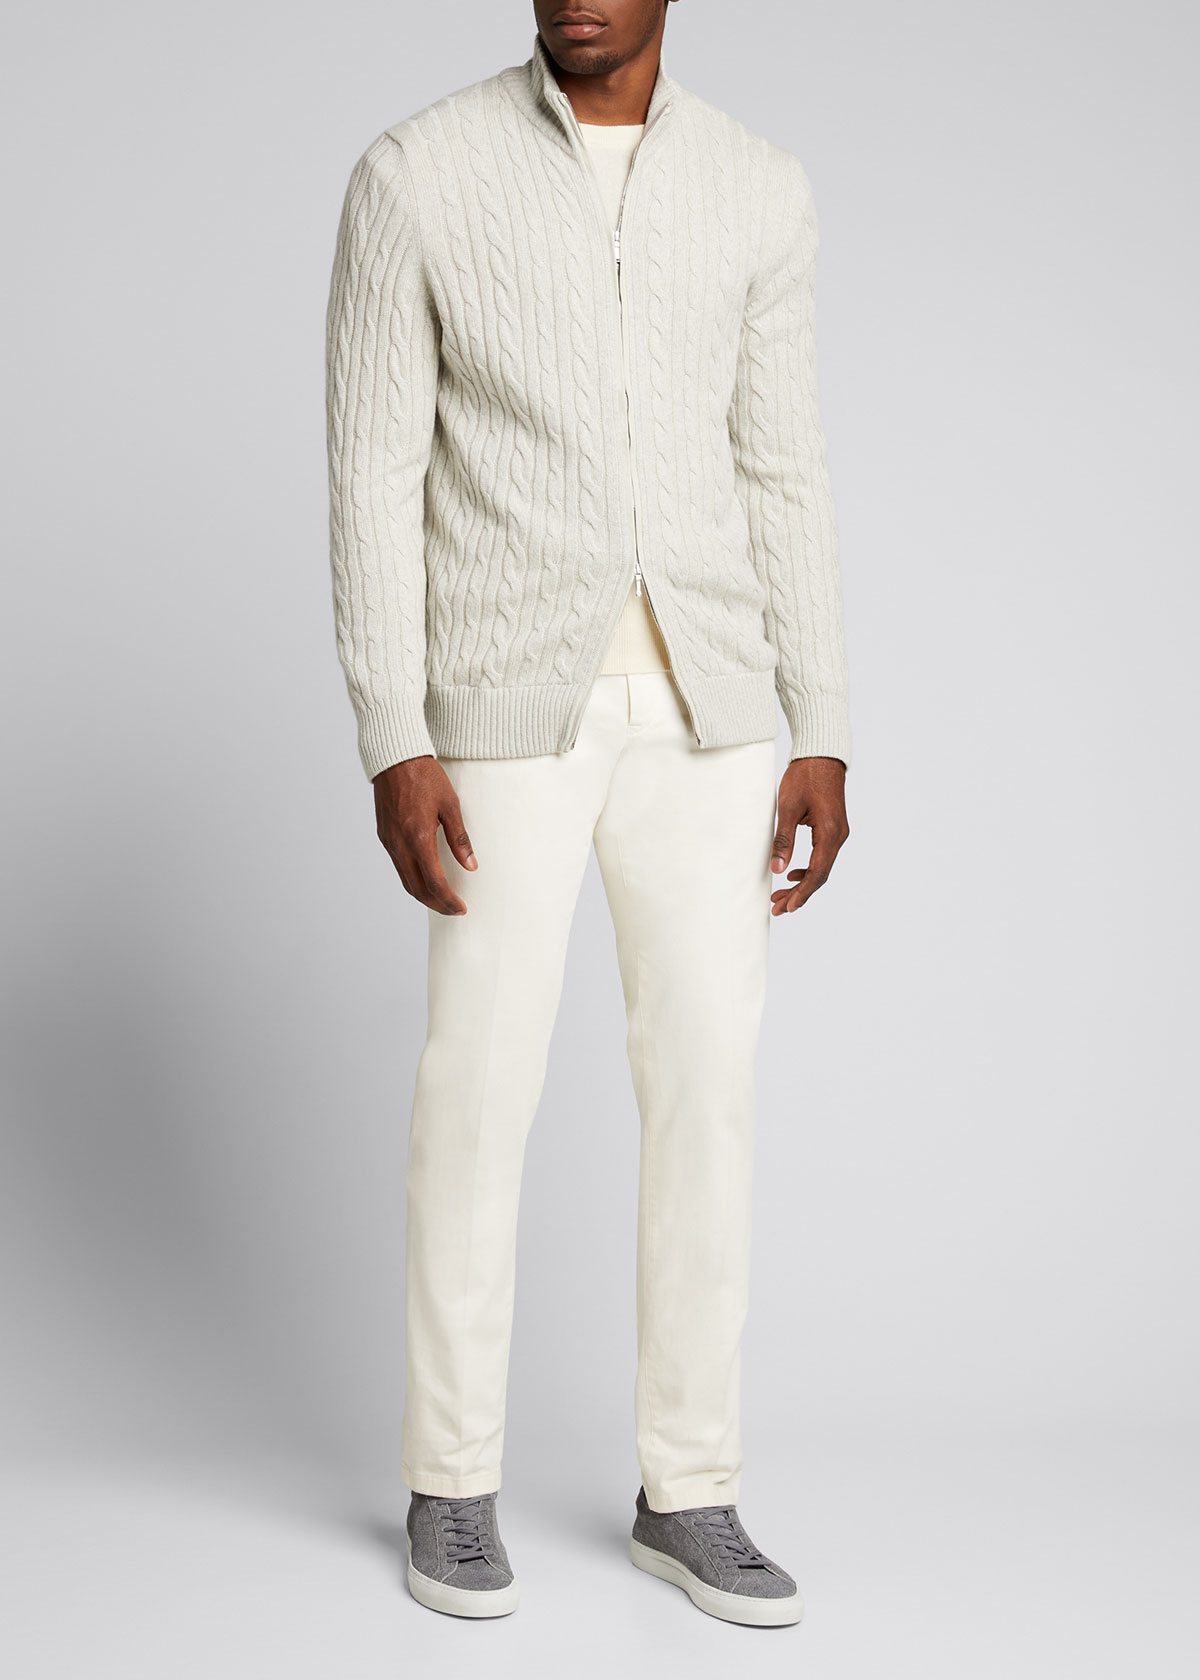 Loro Piana Knits MEN'S CABLE-KNIT CASHMERE ZIP-FRONT SWEATER